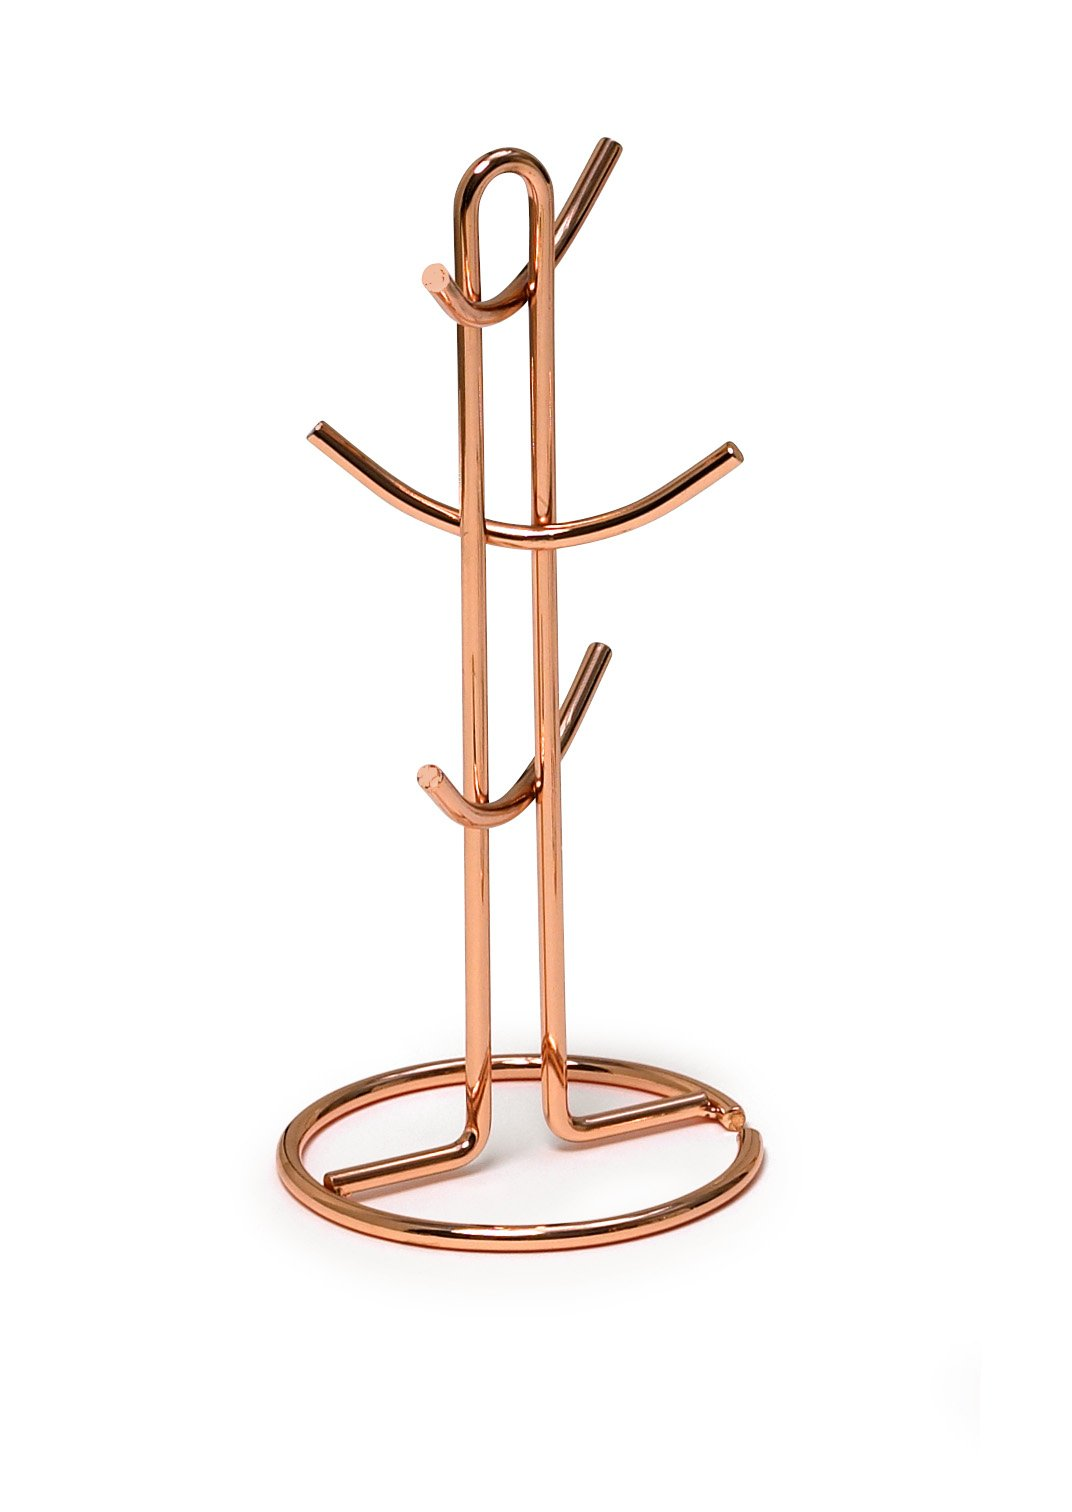 Spectrum Diversified Euro Mug Holder, Copper